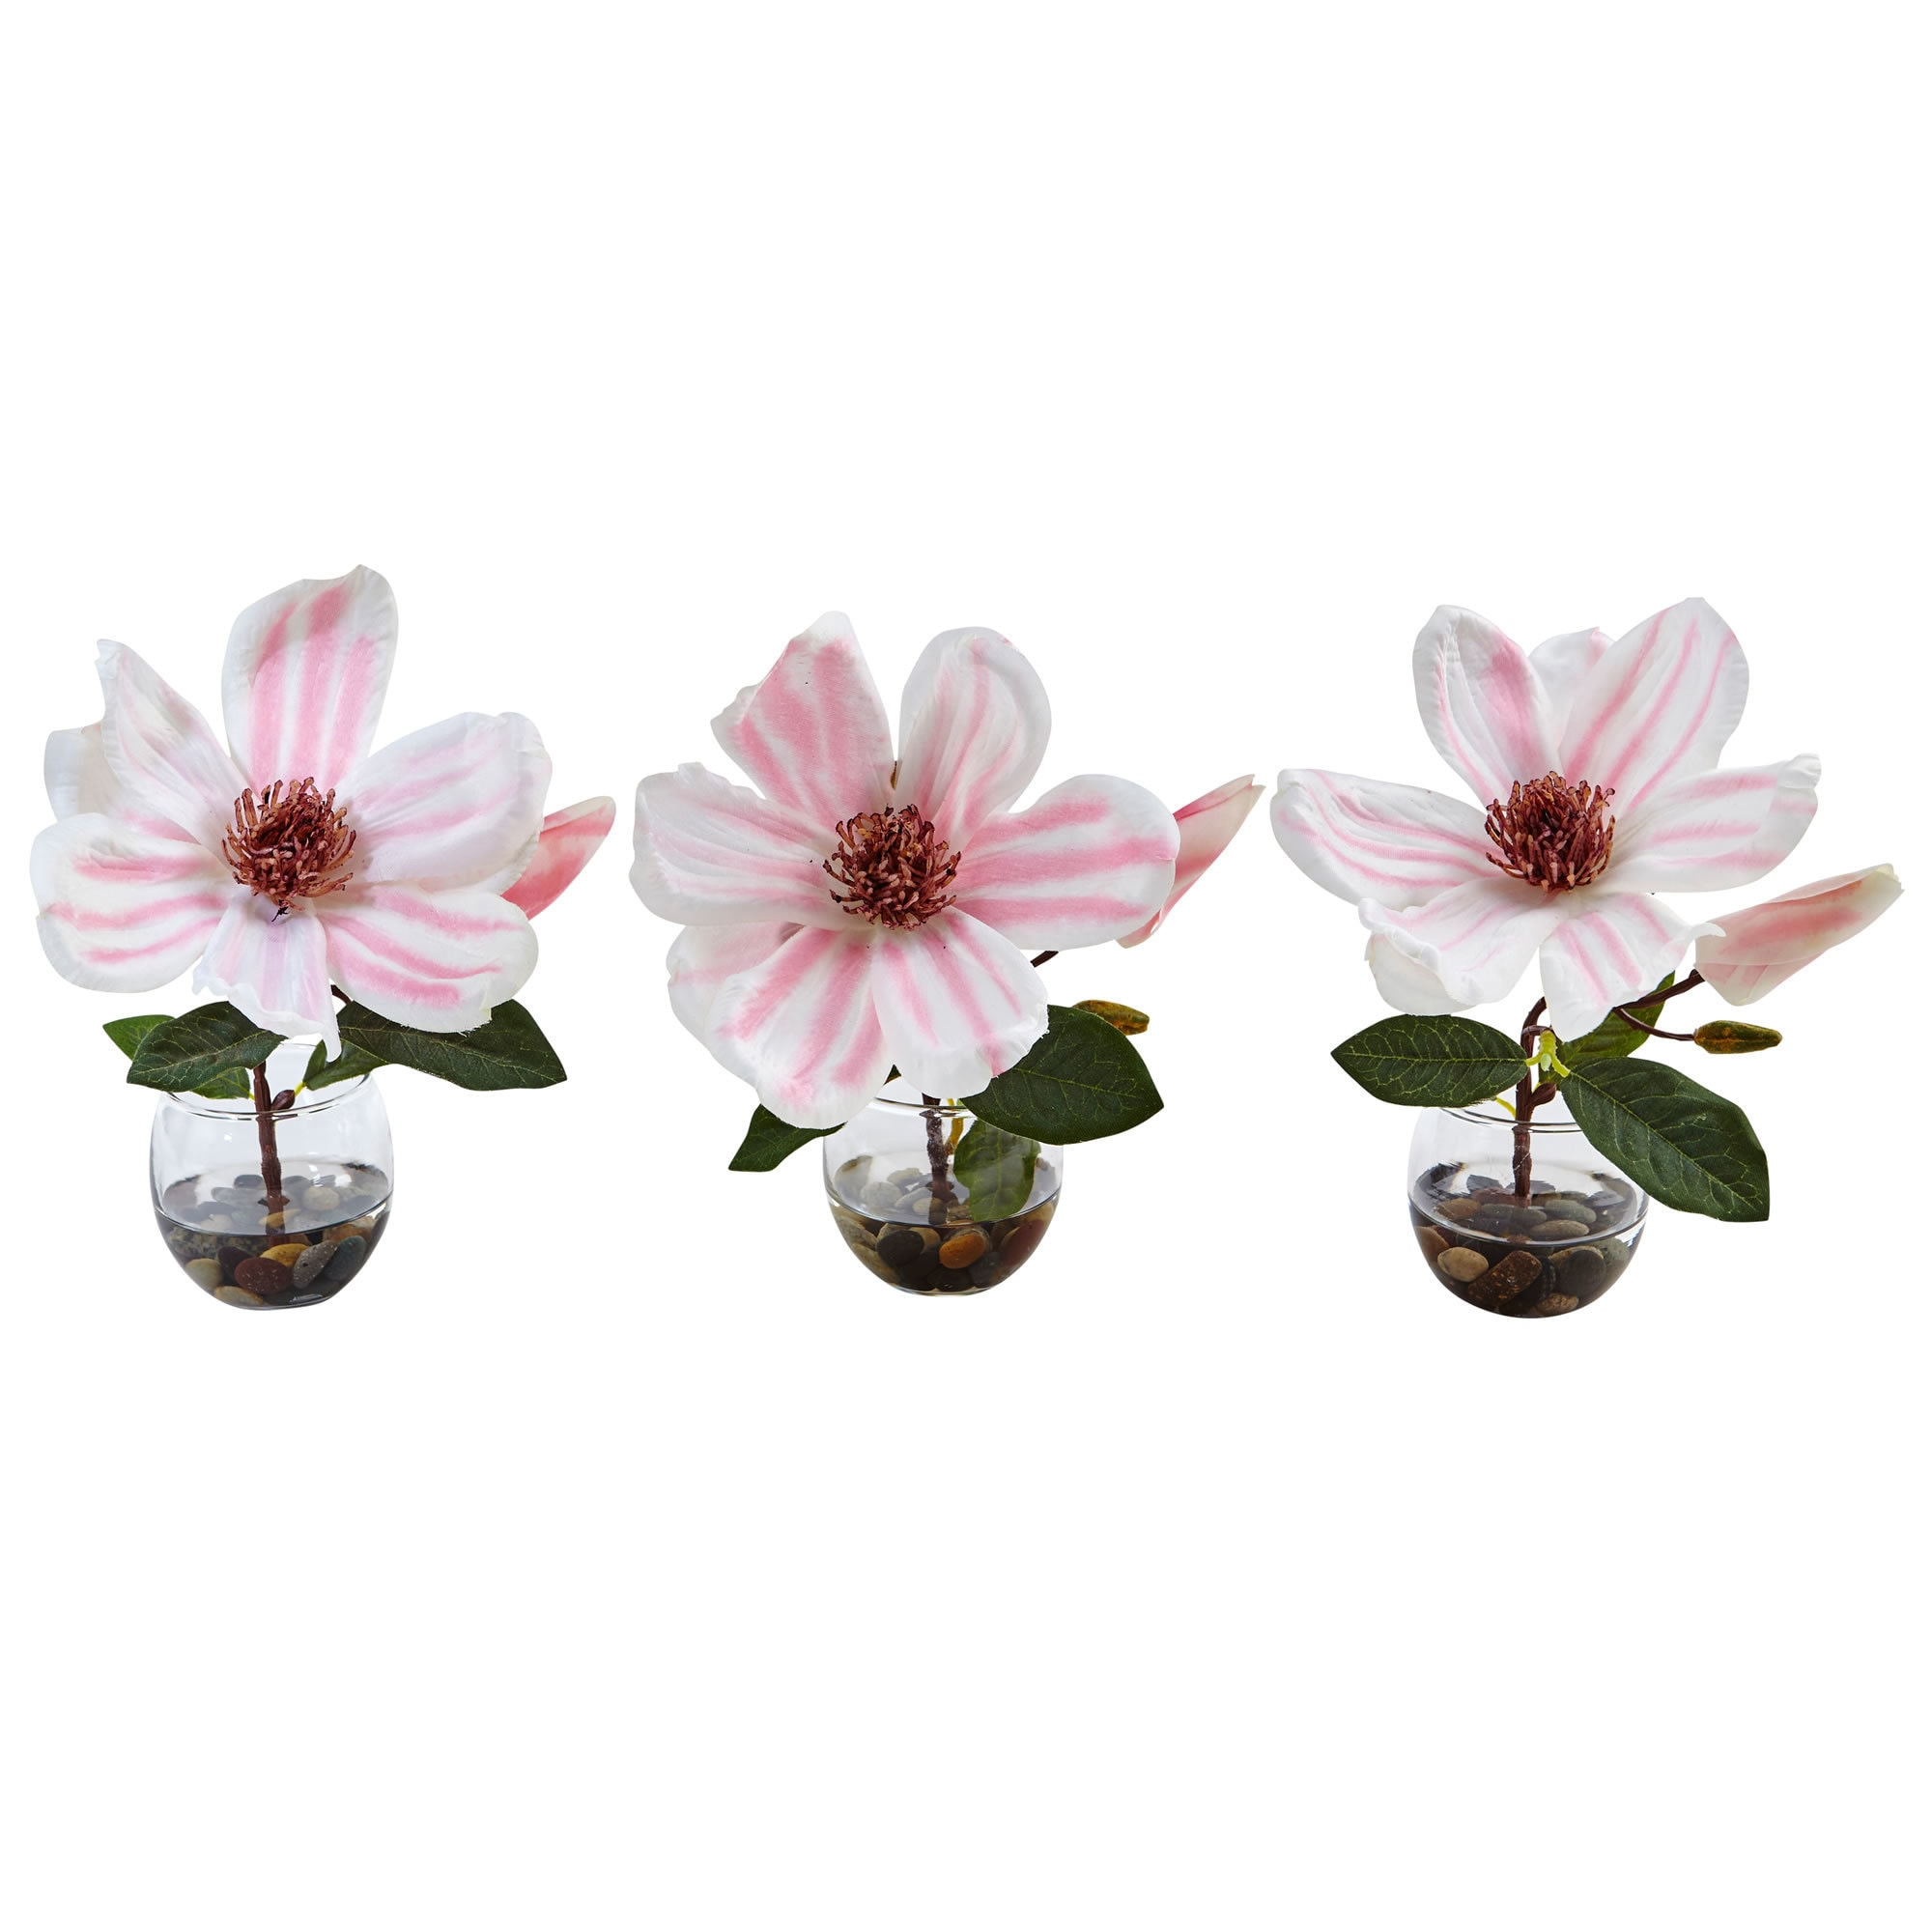 Buy Artificial Plants Clearance Liquidation Online At Overstock